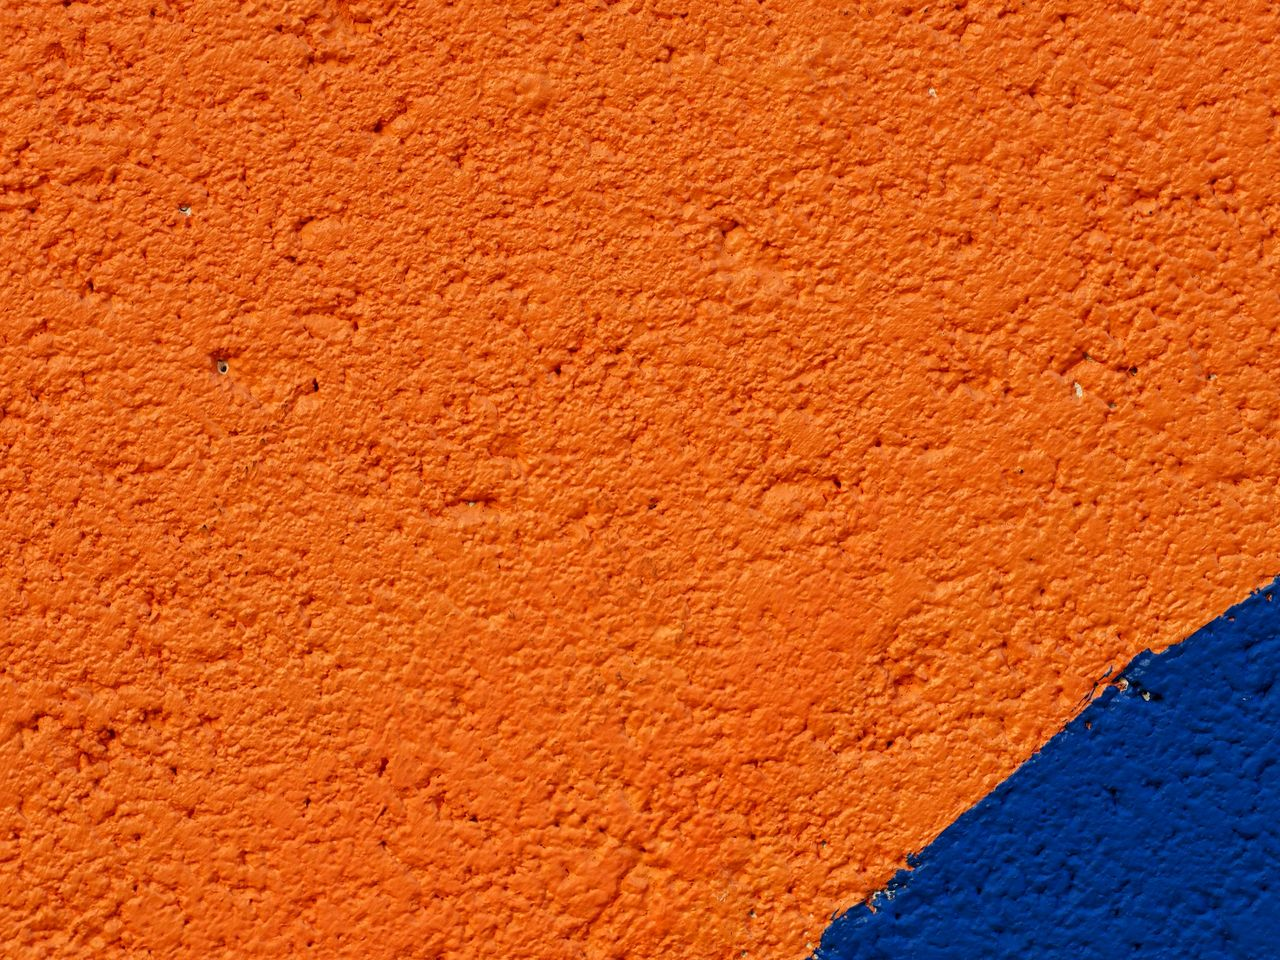 textured, orange color, backgrounds, full frame, architecture, close-up, wall - building feature, built structure, blue, pattern, no people, abstract, vibrant color, copy space, extreme close-up, rough, day, brown, nature, outdoors, textured effect, orange, concrete